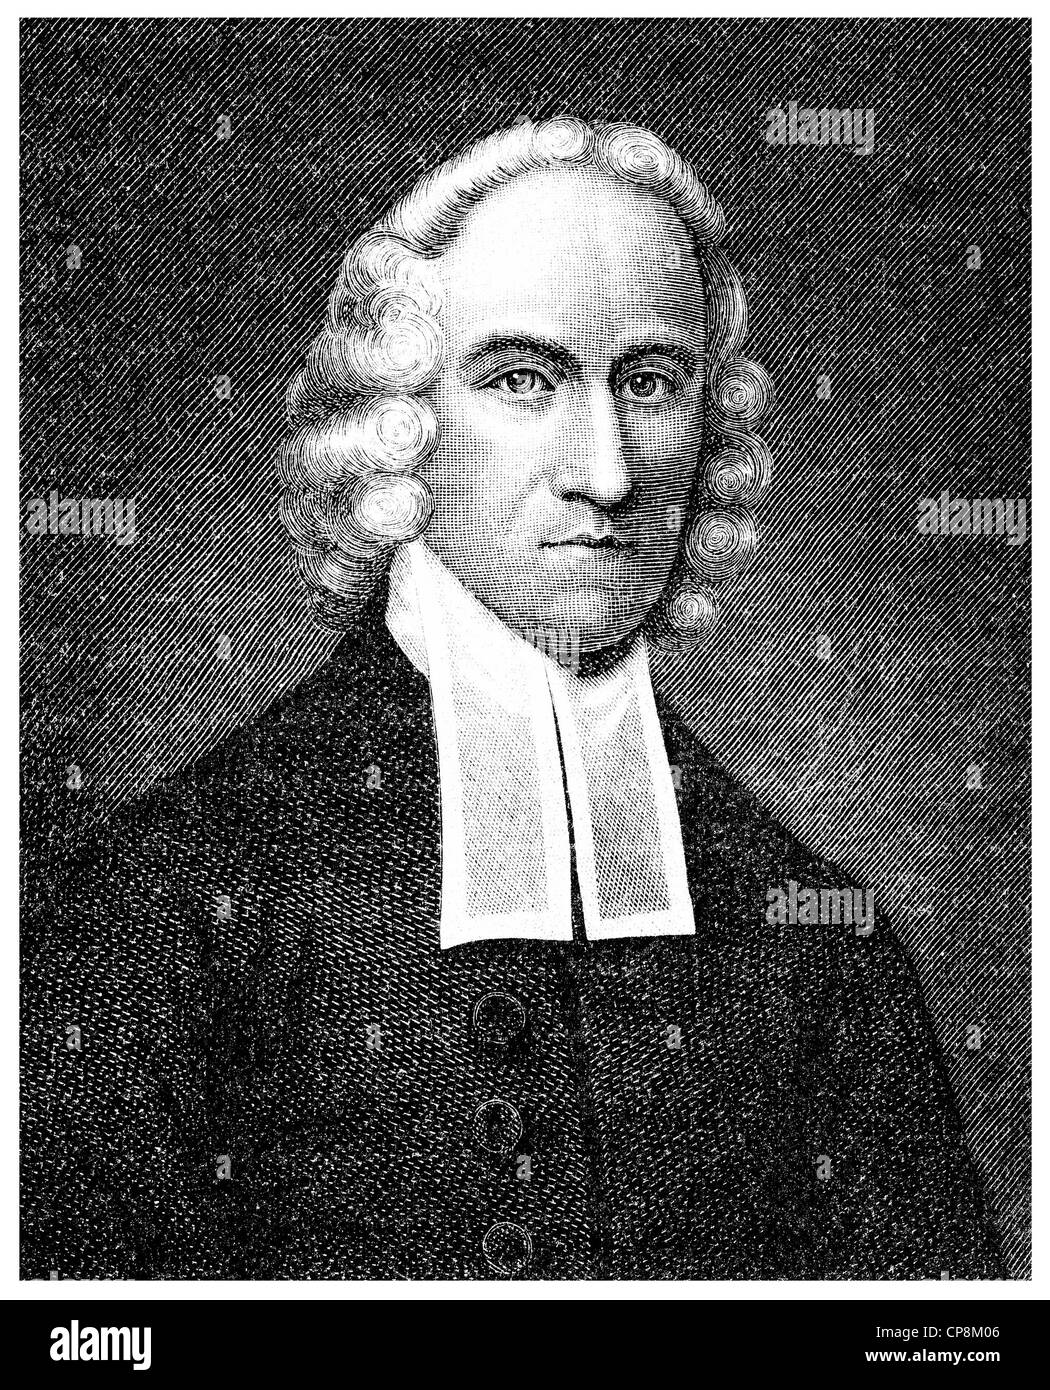 Jonathan Edwards, 1703 - 1758, an American, New England preacher, missionary and leader of the revival of the Great - Stock Image